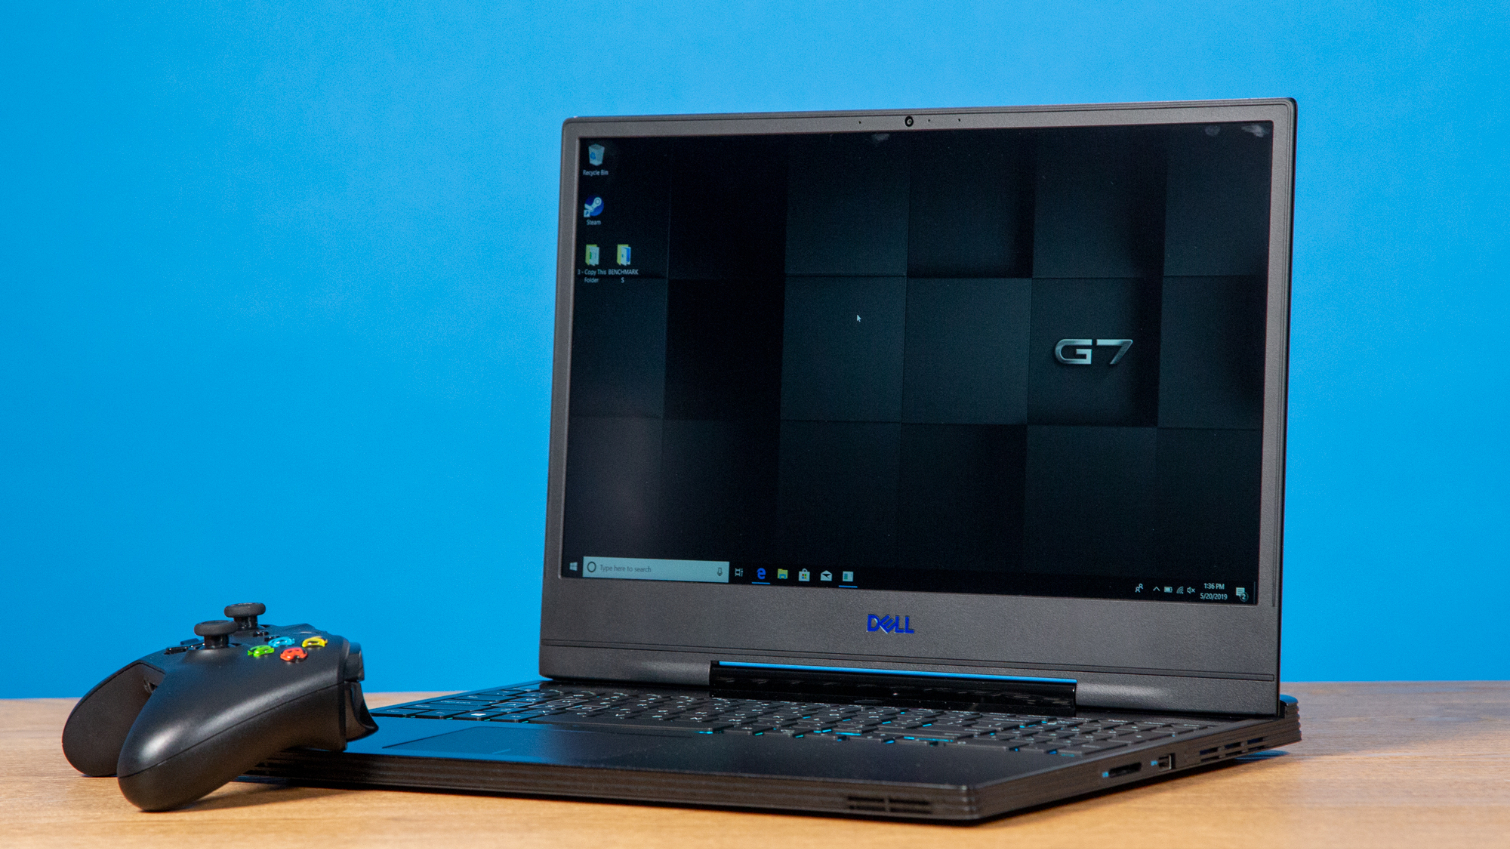 Dell G7 15 Gaming Laptop Review: Reliable Performer - Tom's